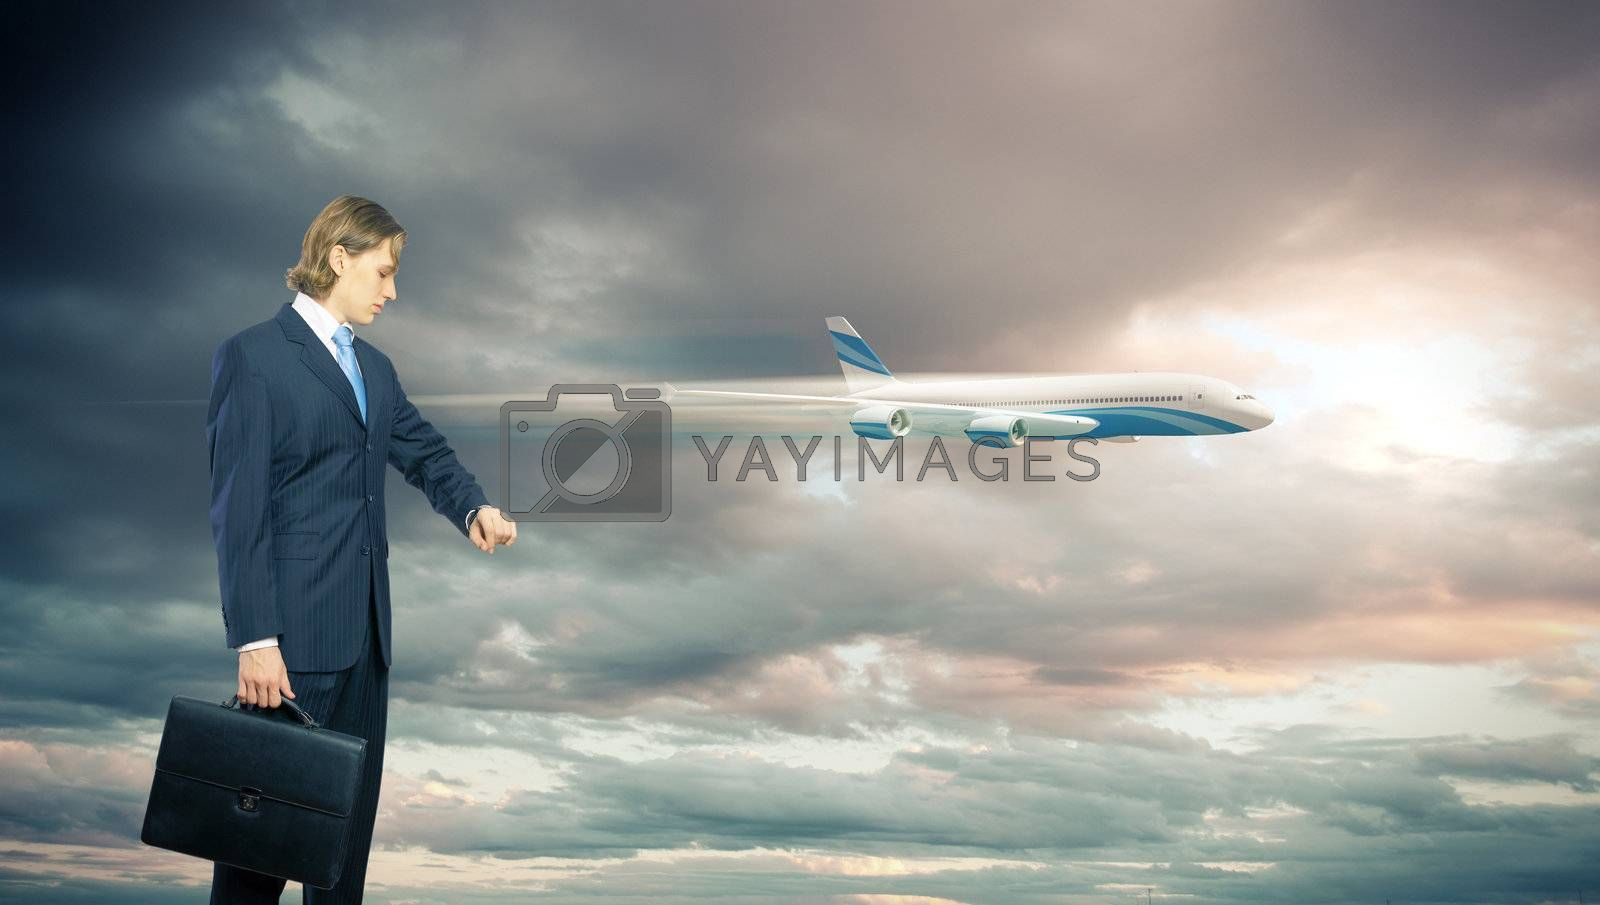 Business travelling collage with a plane by Sergey Nivens